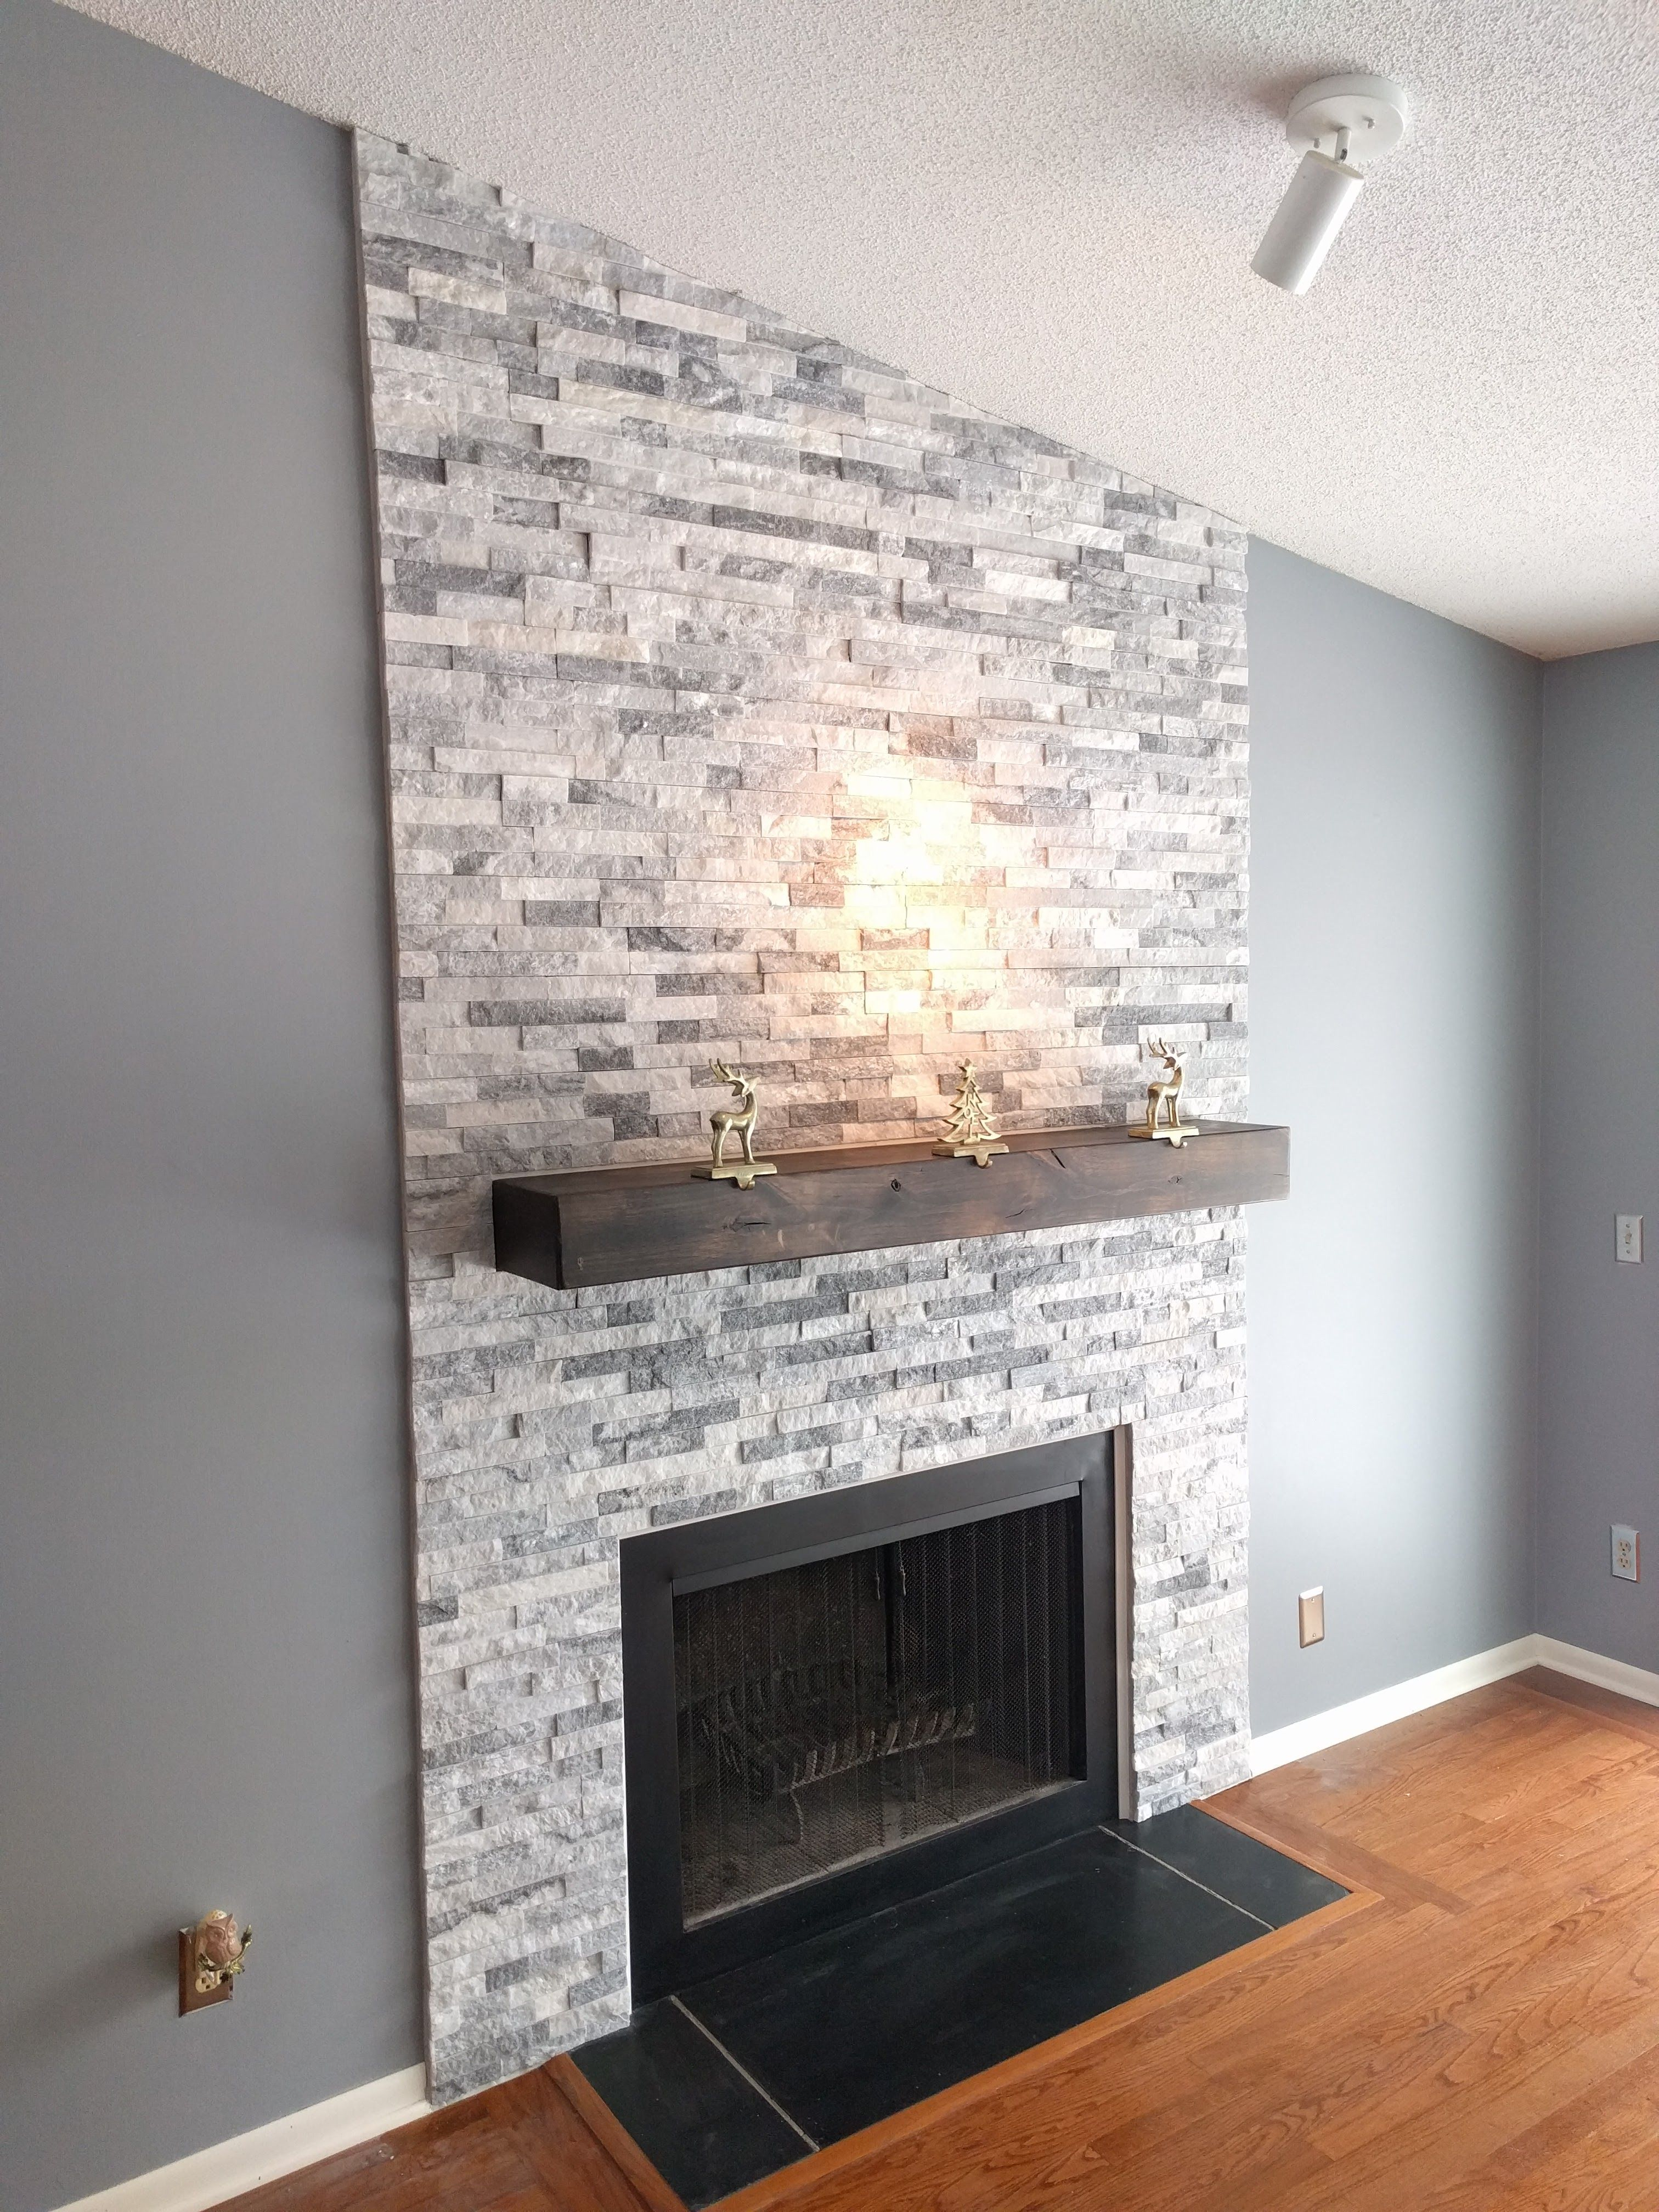 Best Modern Fireplaces (Tile & Design) images in Here